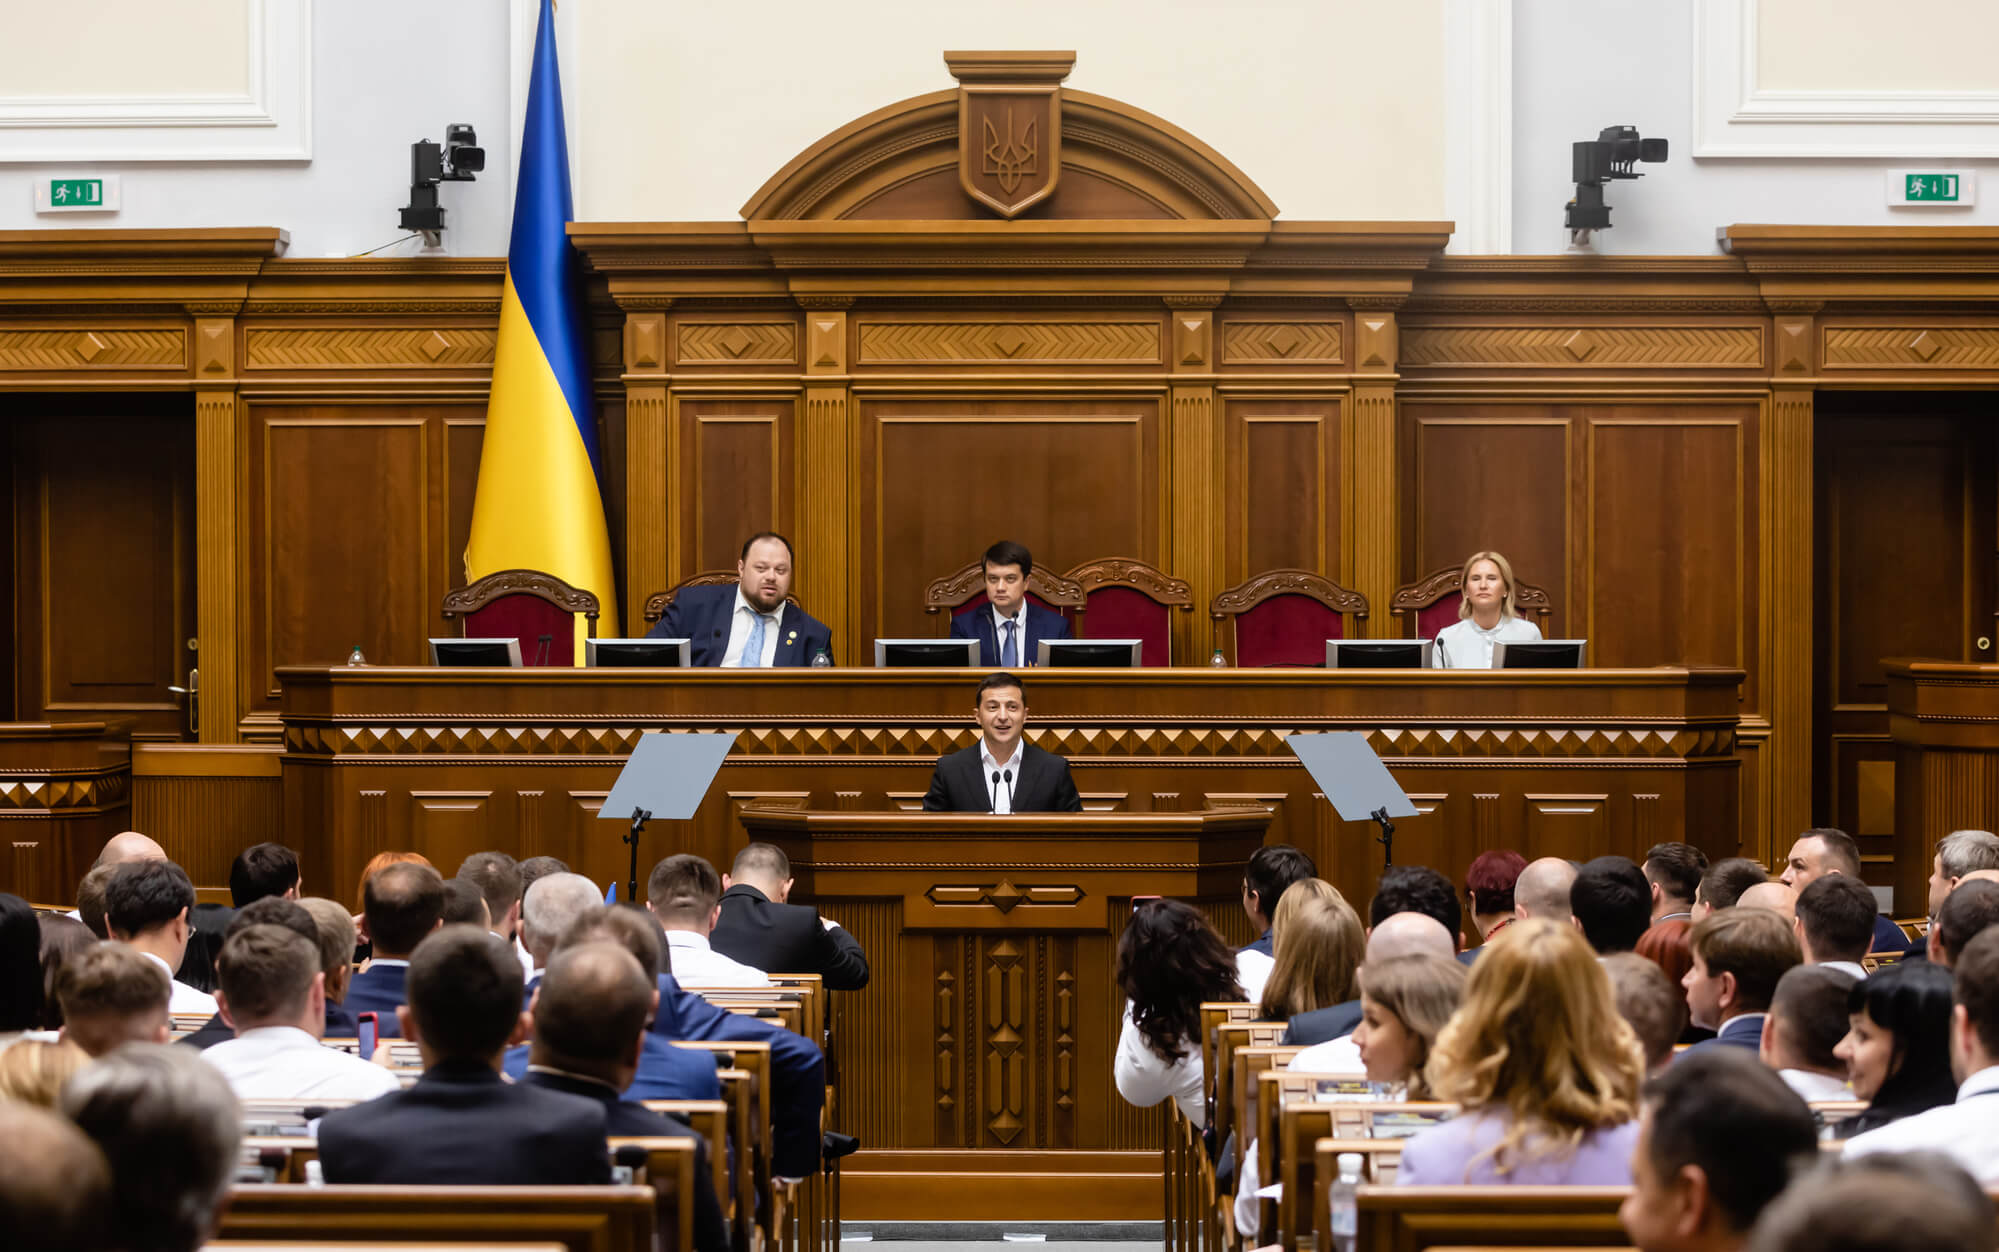 Their first time. VoxCheck of the first session of the IXth Verkhovna Rada convocation